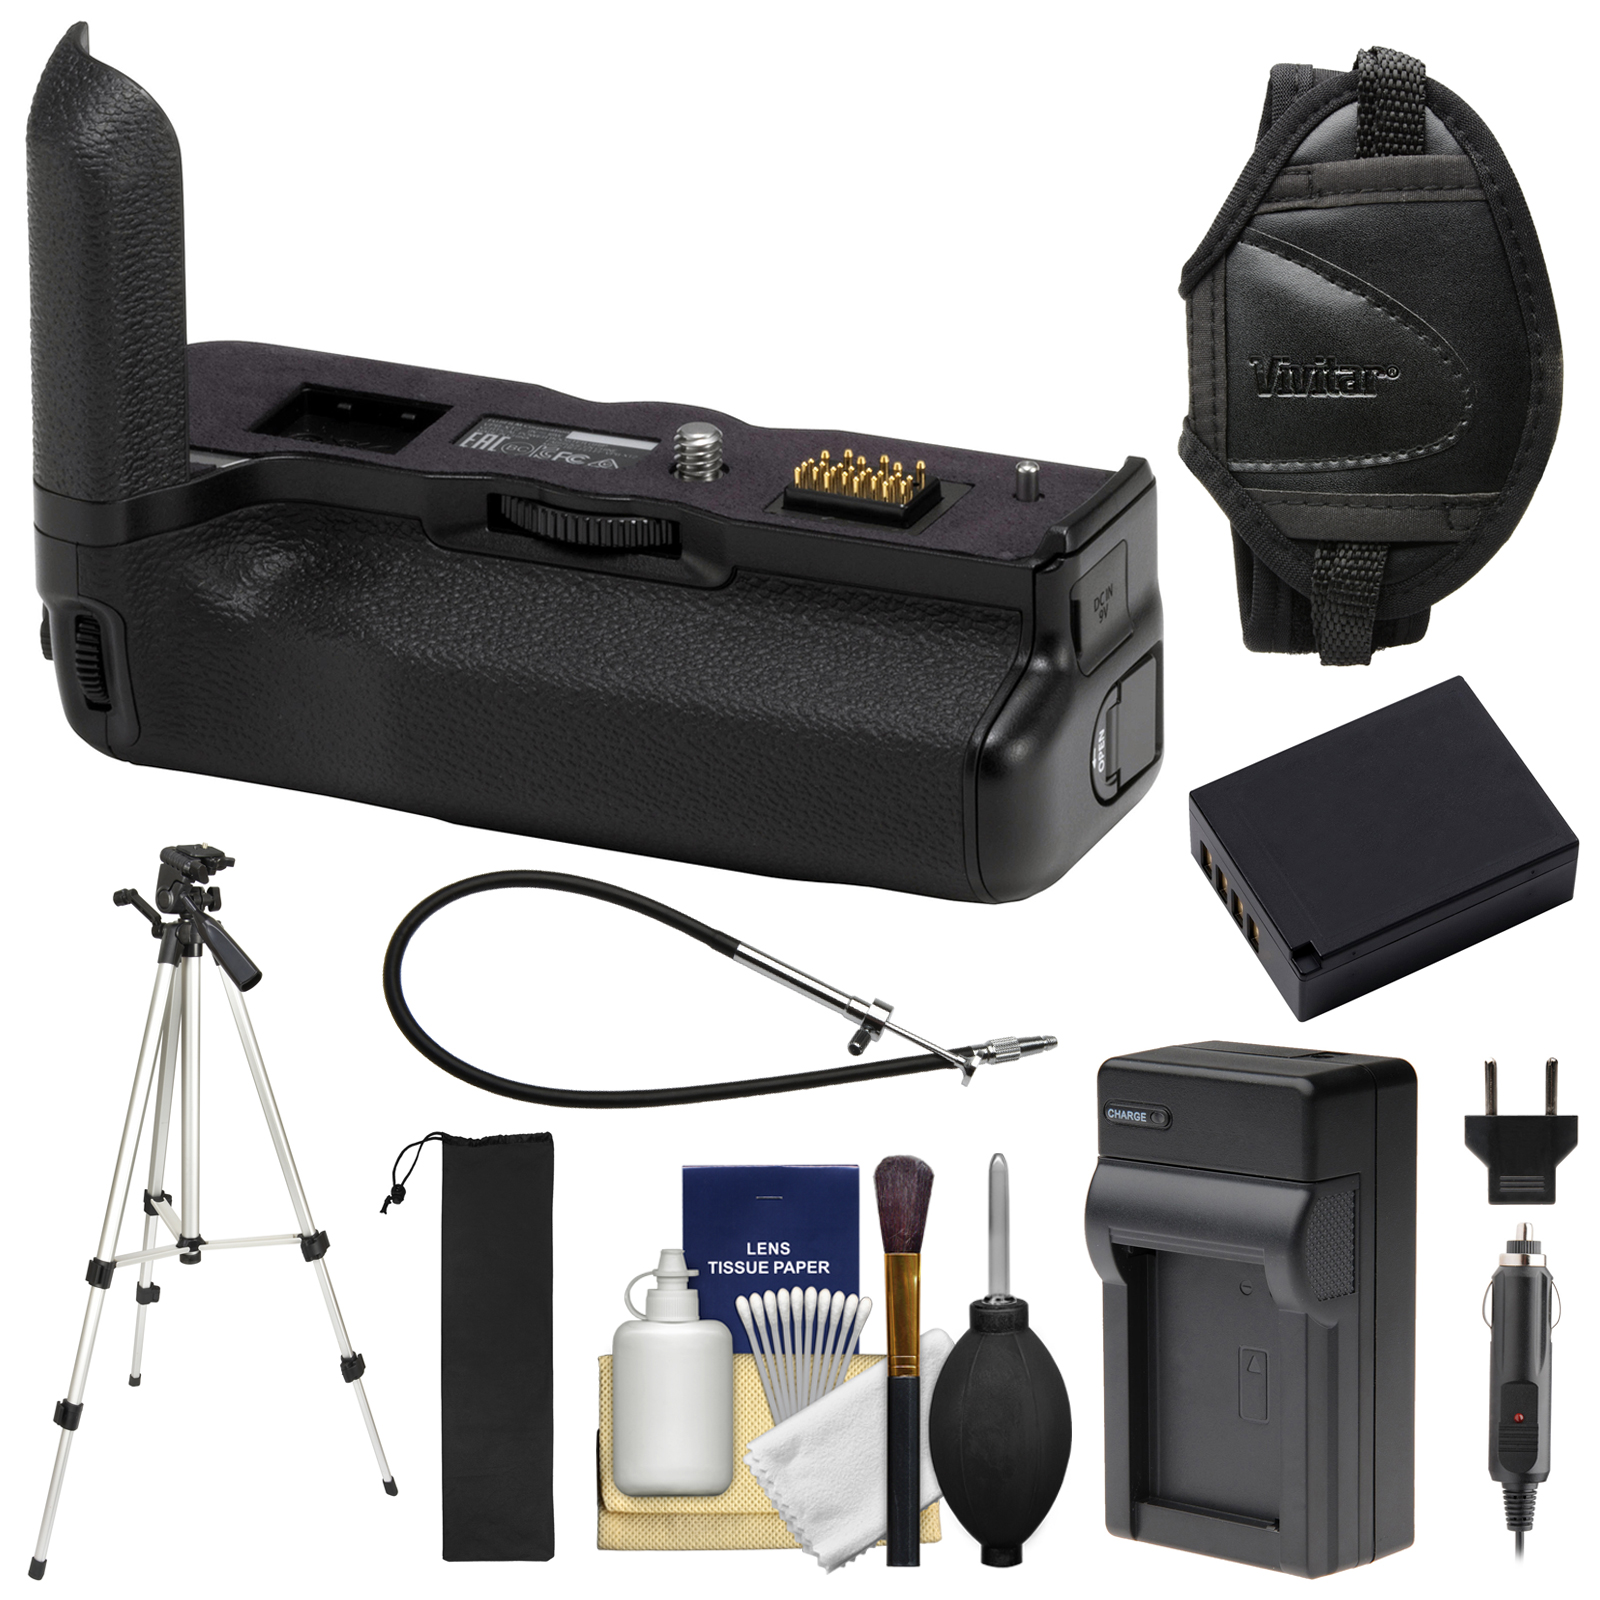 Fujifilm VPB-XT3 Vertical Power Booster Battery Grip for X-T3 Cameras with Battery & Charger + Tripod + Strap + Kit